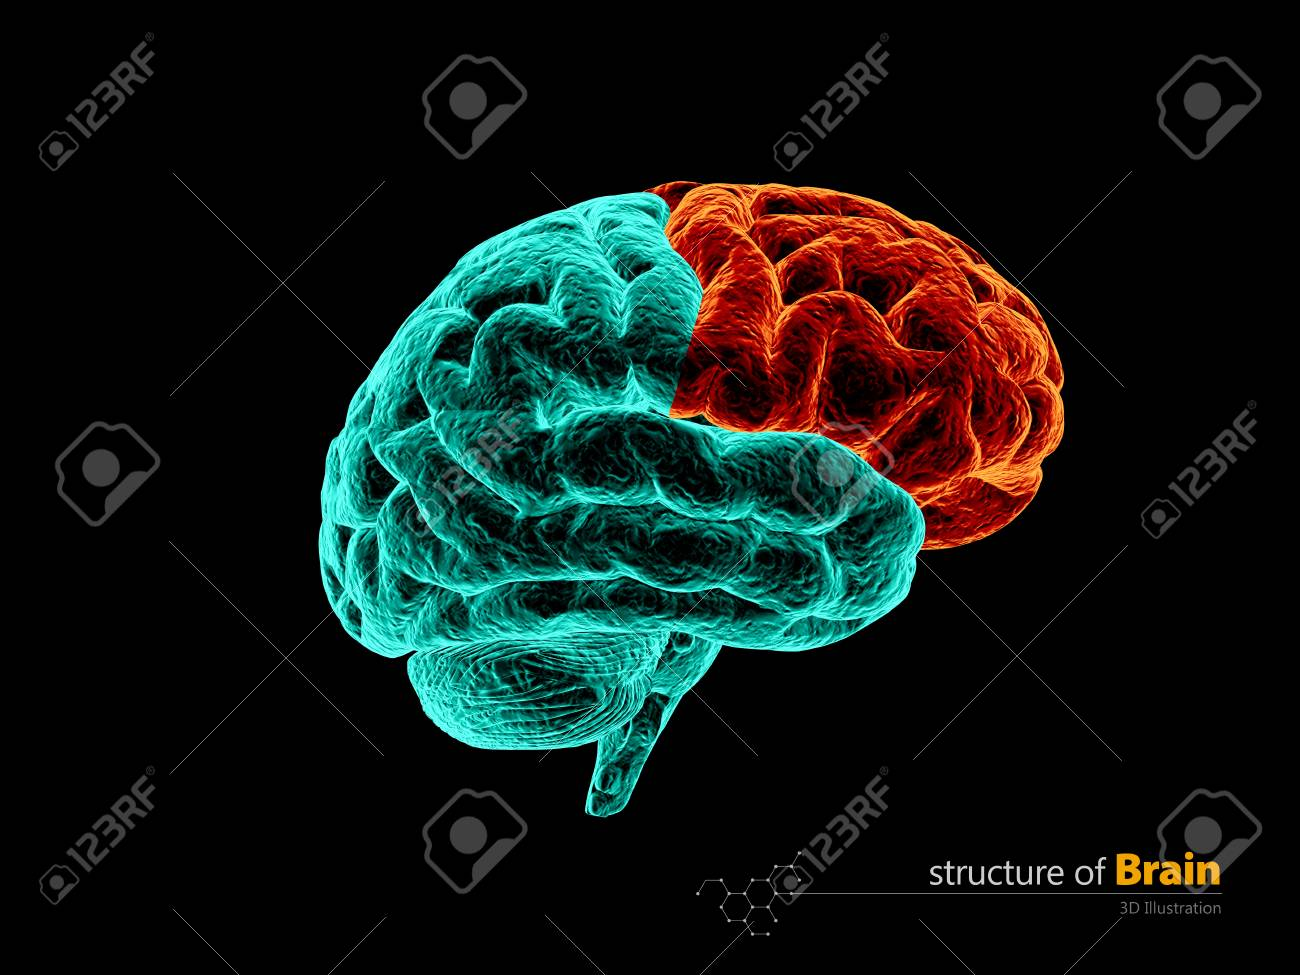 Human Brain, Frontal Lobe Anatomy Structure. Human Brain Anatomy ...